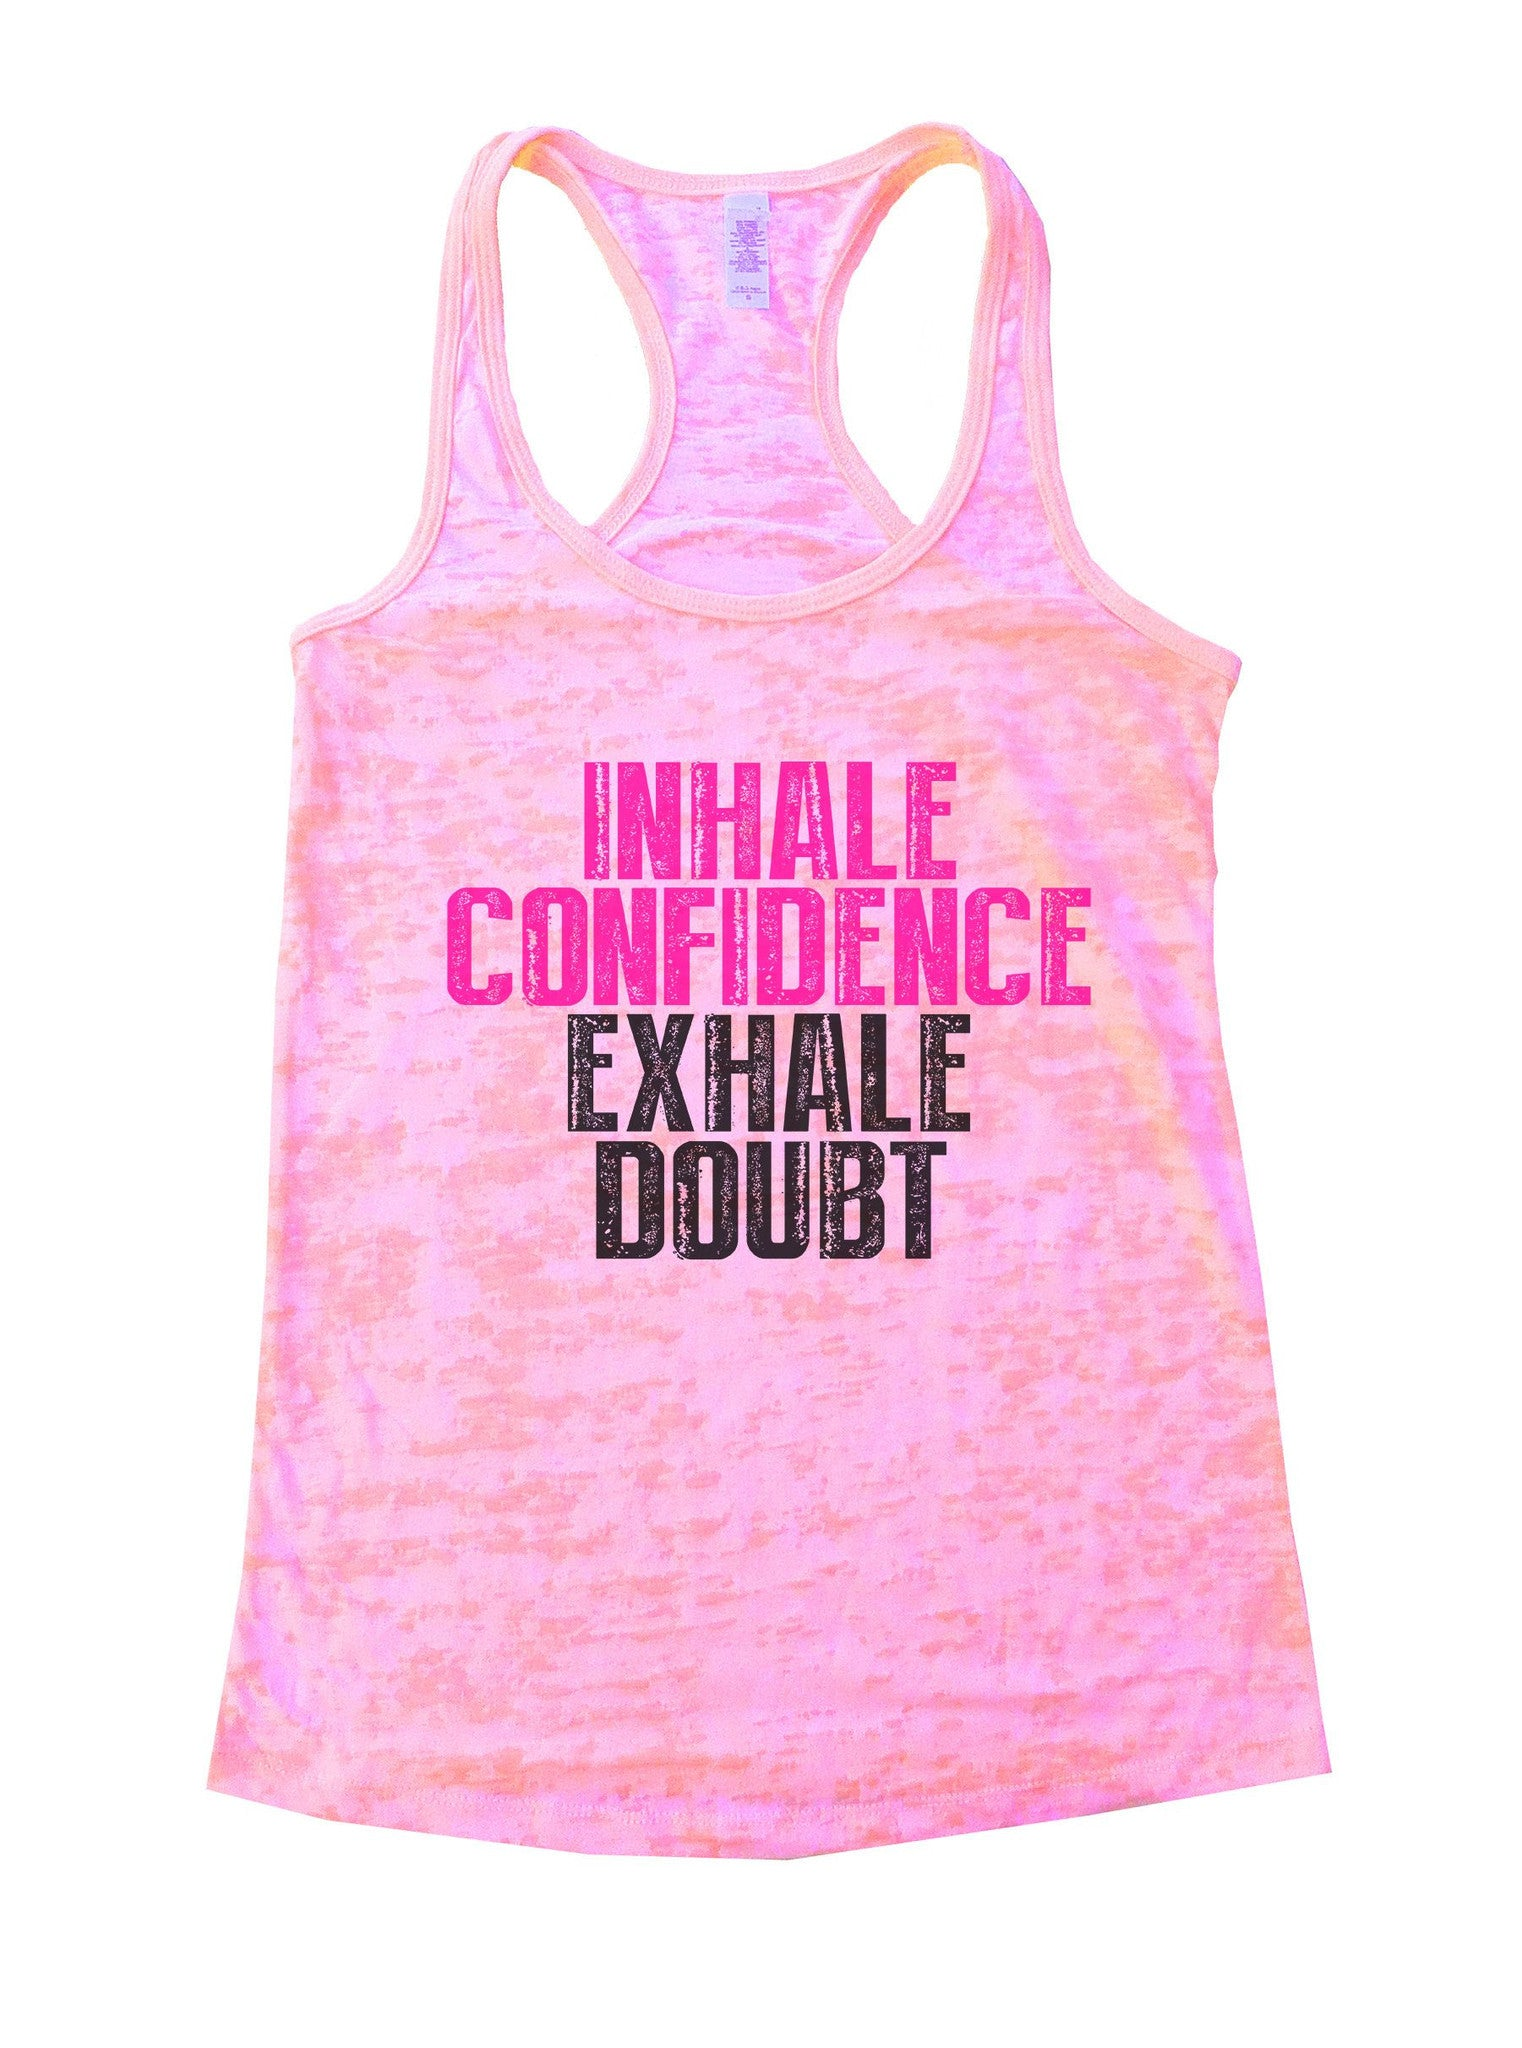 Inhale Confidence Exhale Doubt Burnout Tank Top By BurnoutTankTops.com - 1021 - Funny Shirts Tank Tops Burnouts and Triblends  - 2